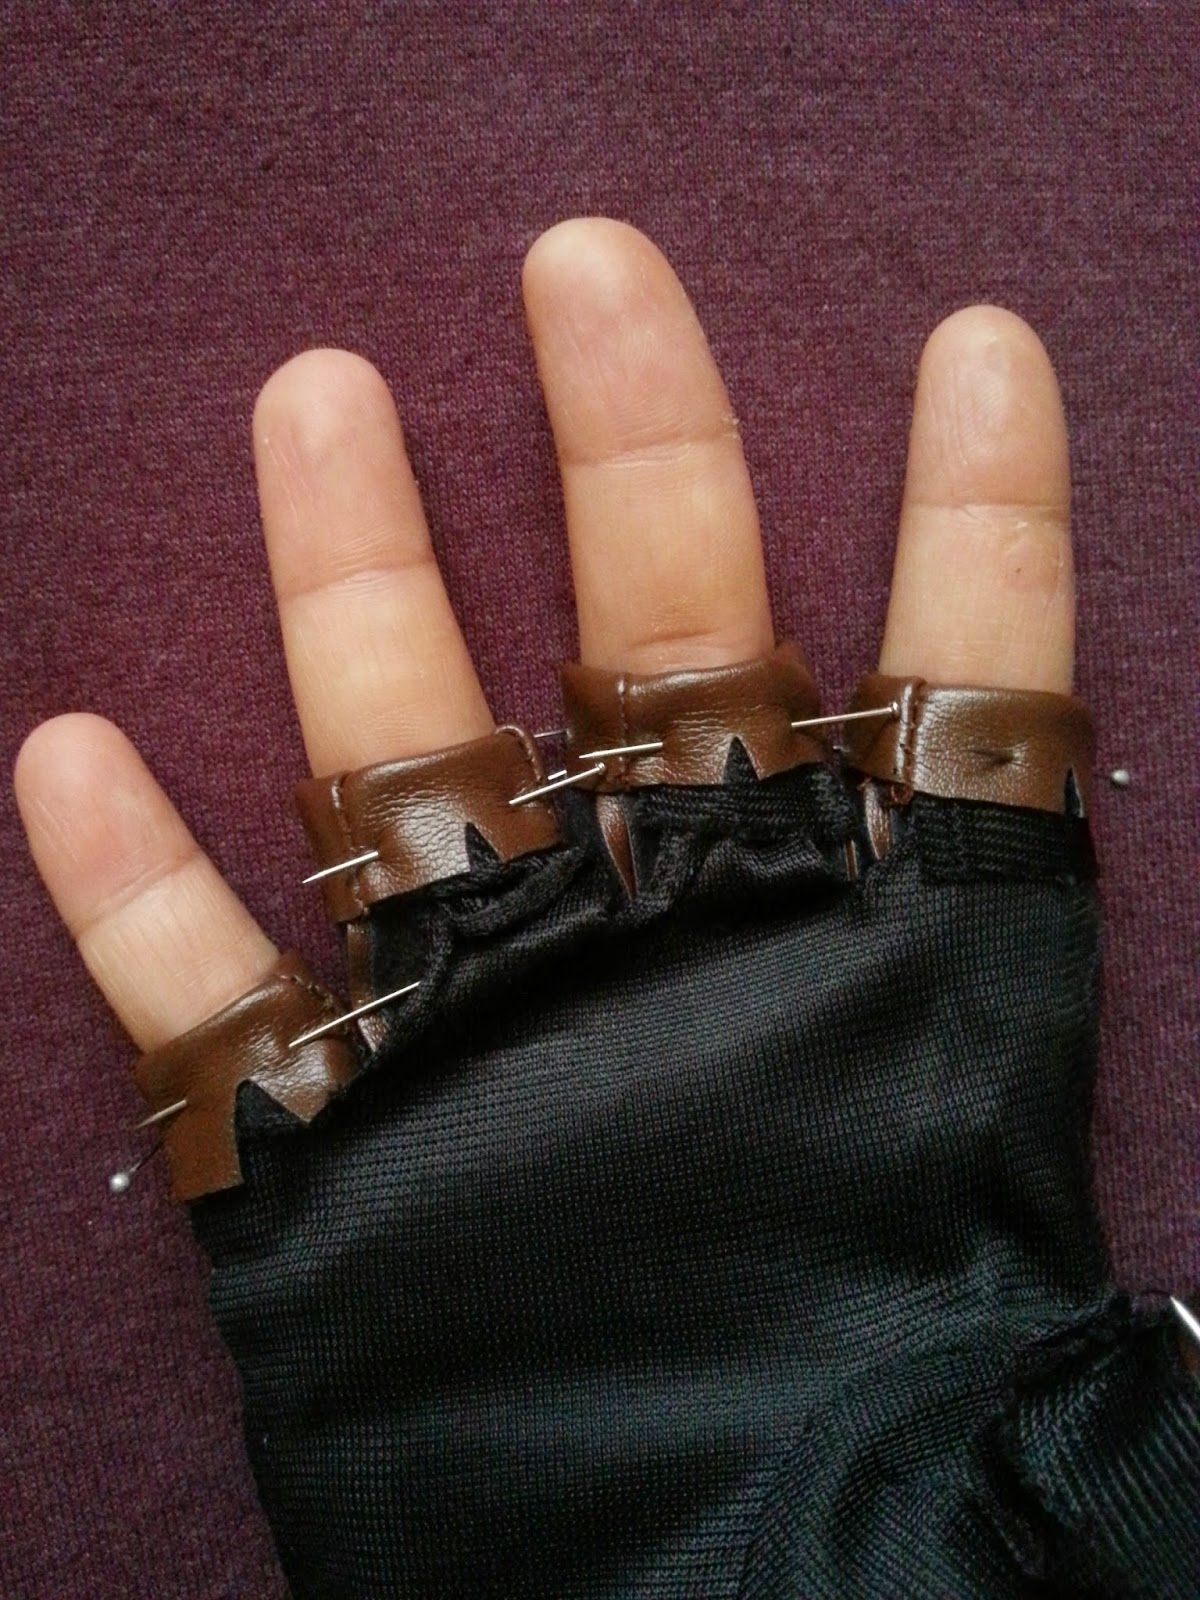 Driving gloves yahoo answers - Silver Afternoon Fingerless Gloves From Leather Gloves Tutorial